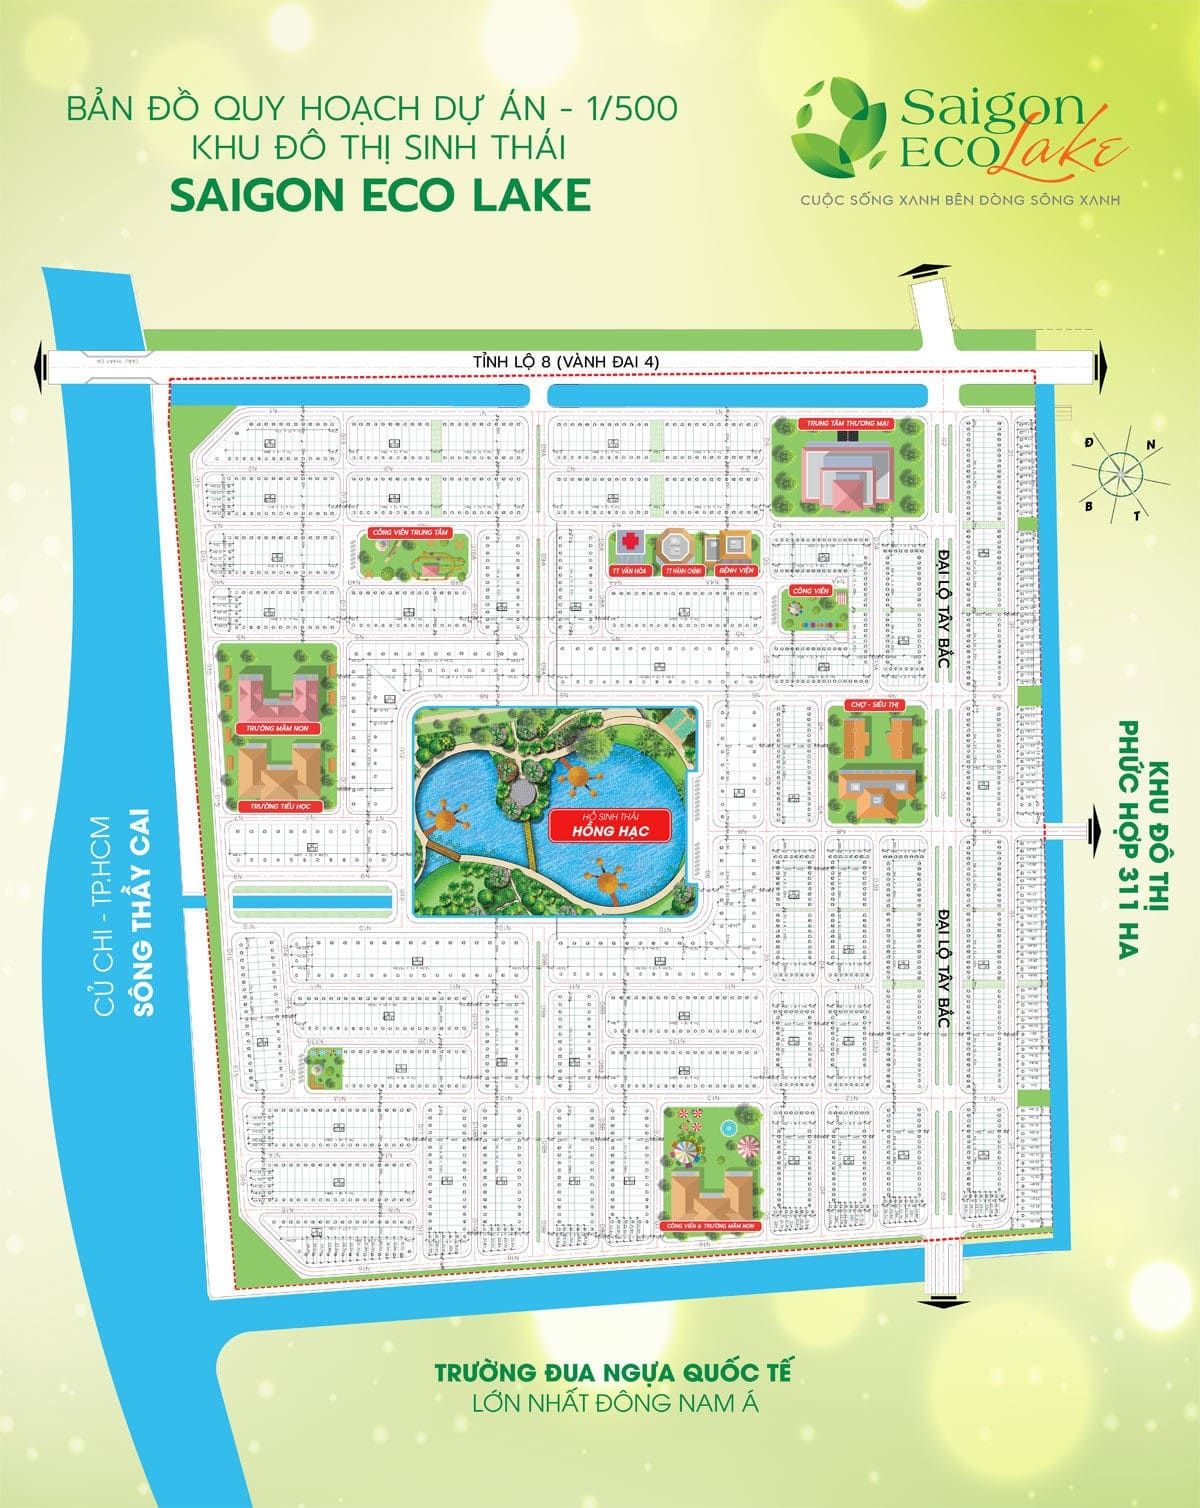 mat bang phan lo du an saigon eco lake - DỰ ÁN SAIGON ECO LAKE